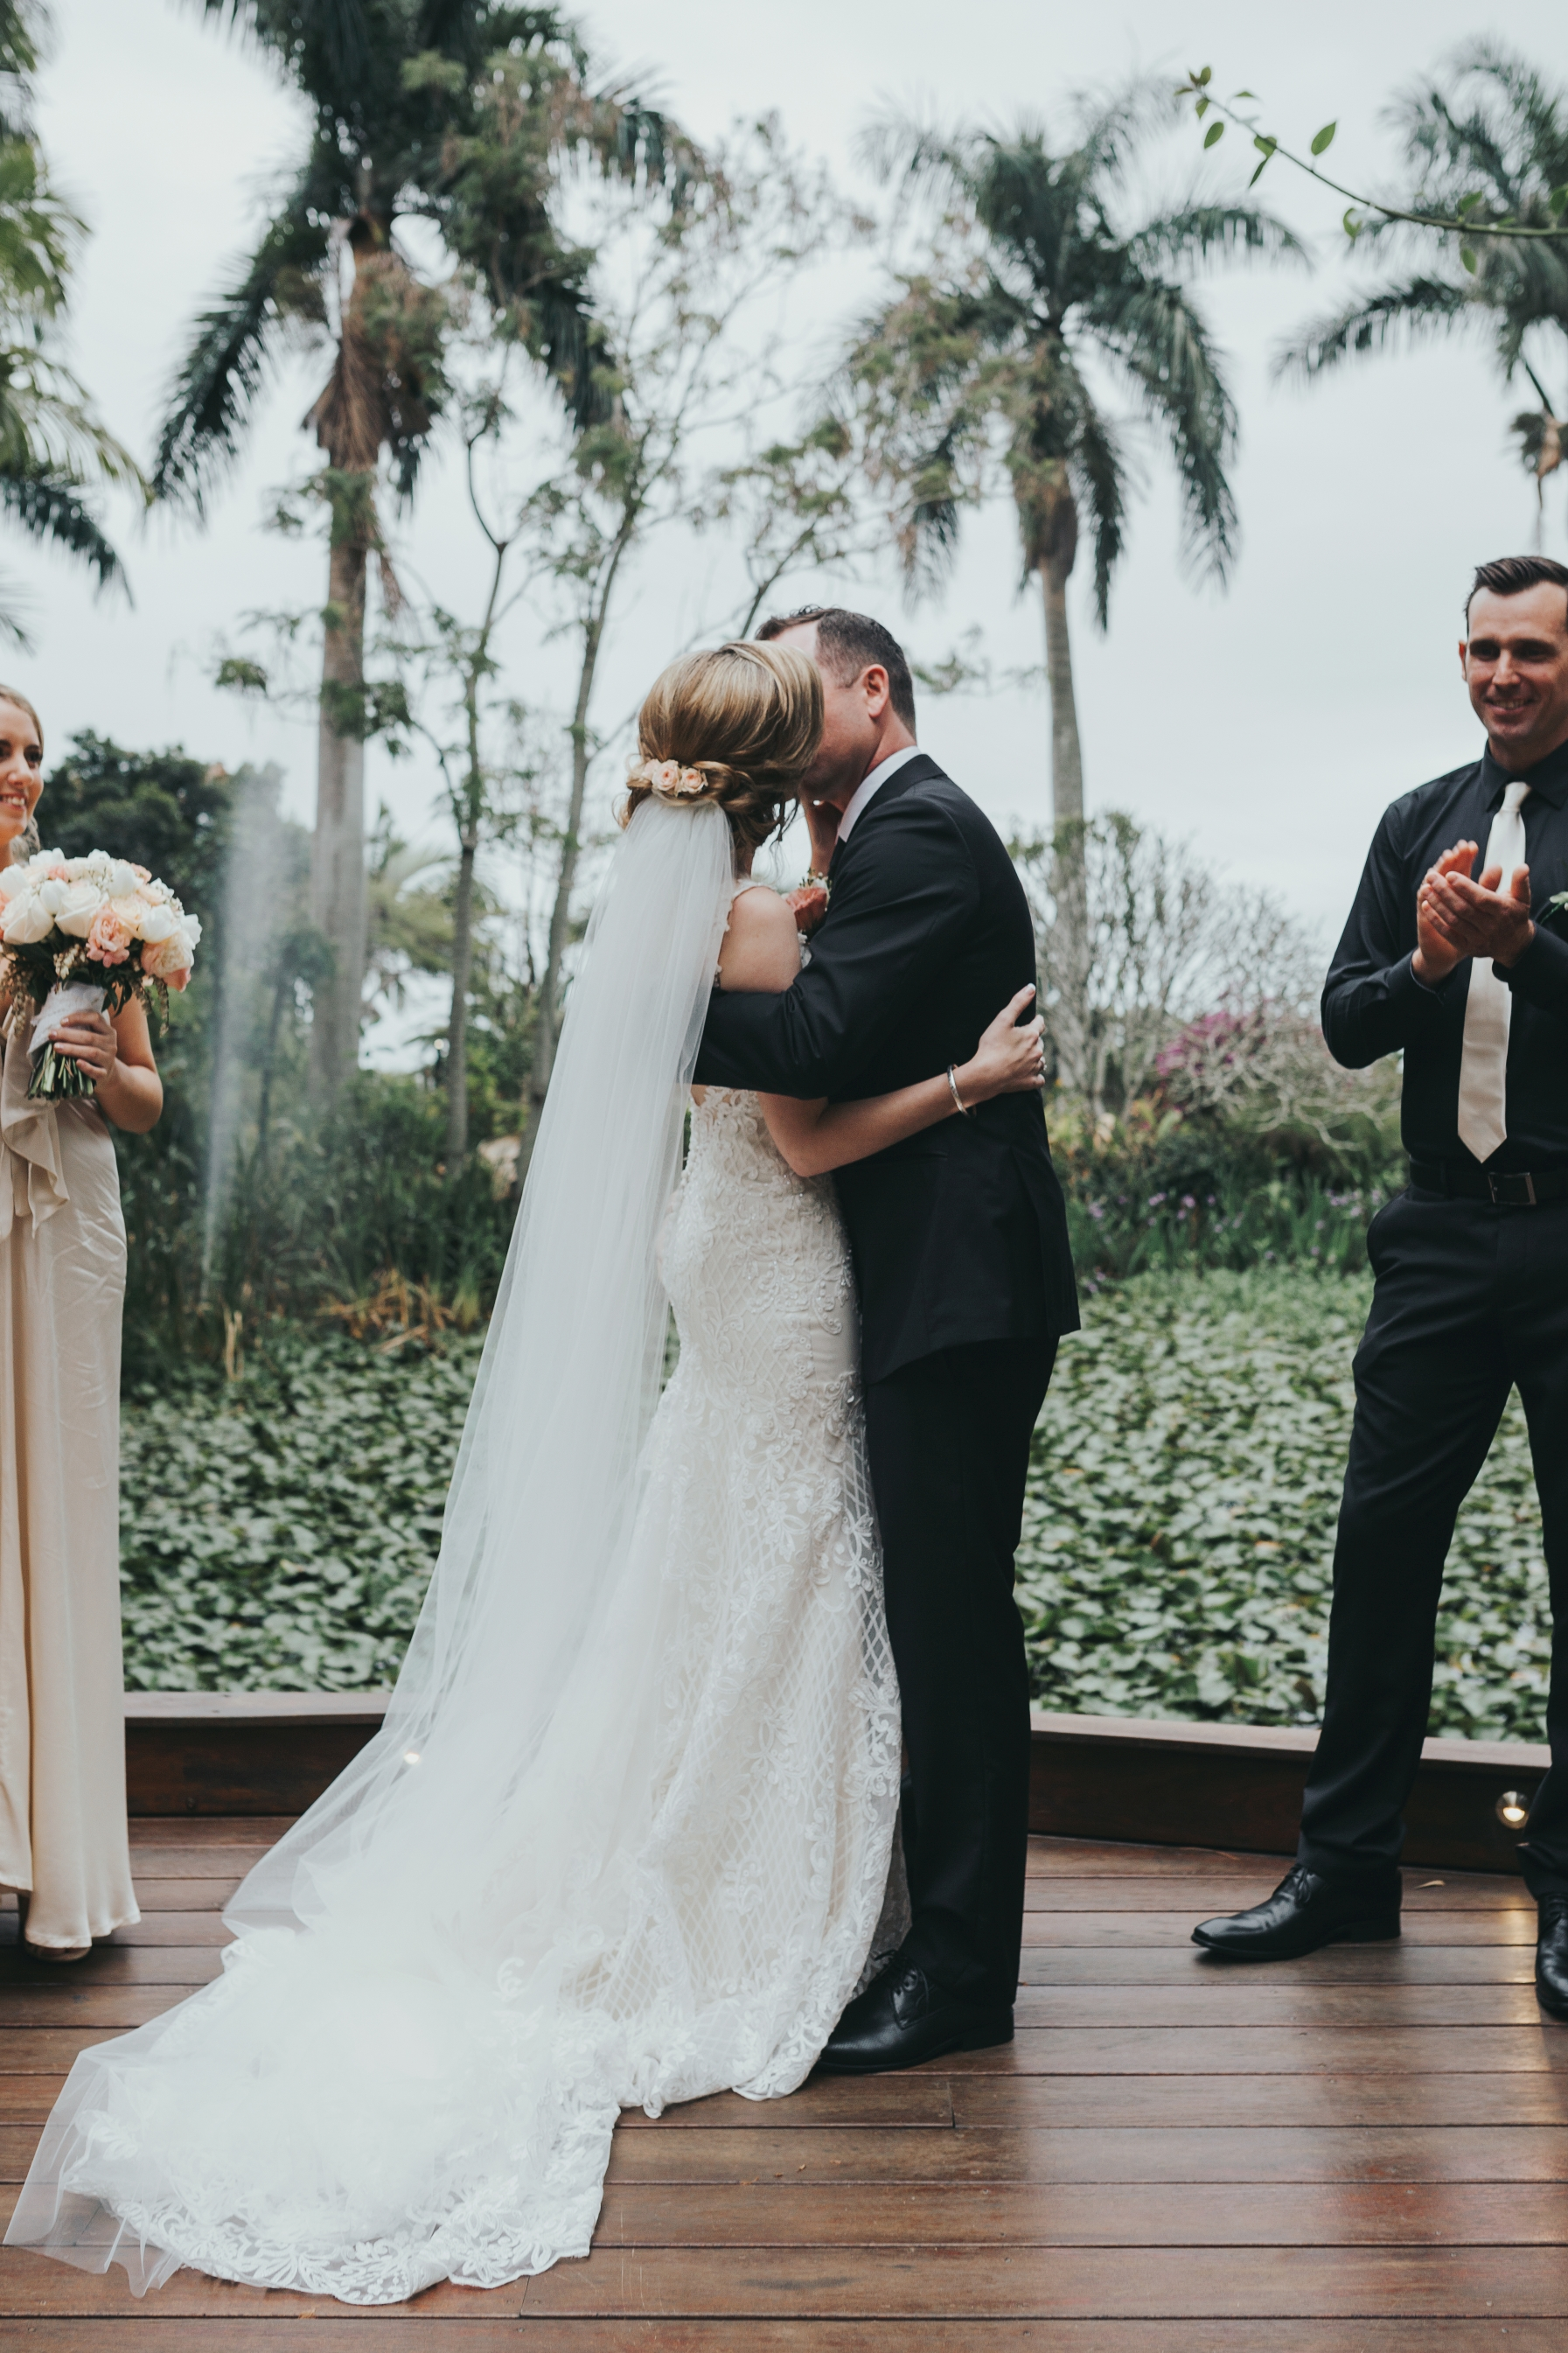 Bride and groom kiss at their wedding ceremony in front of a lake at a beautiful venue in Brisbane.